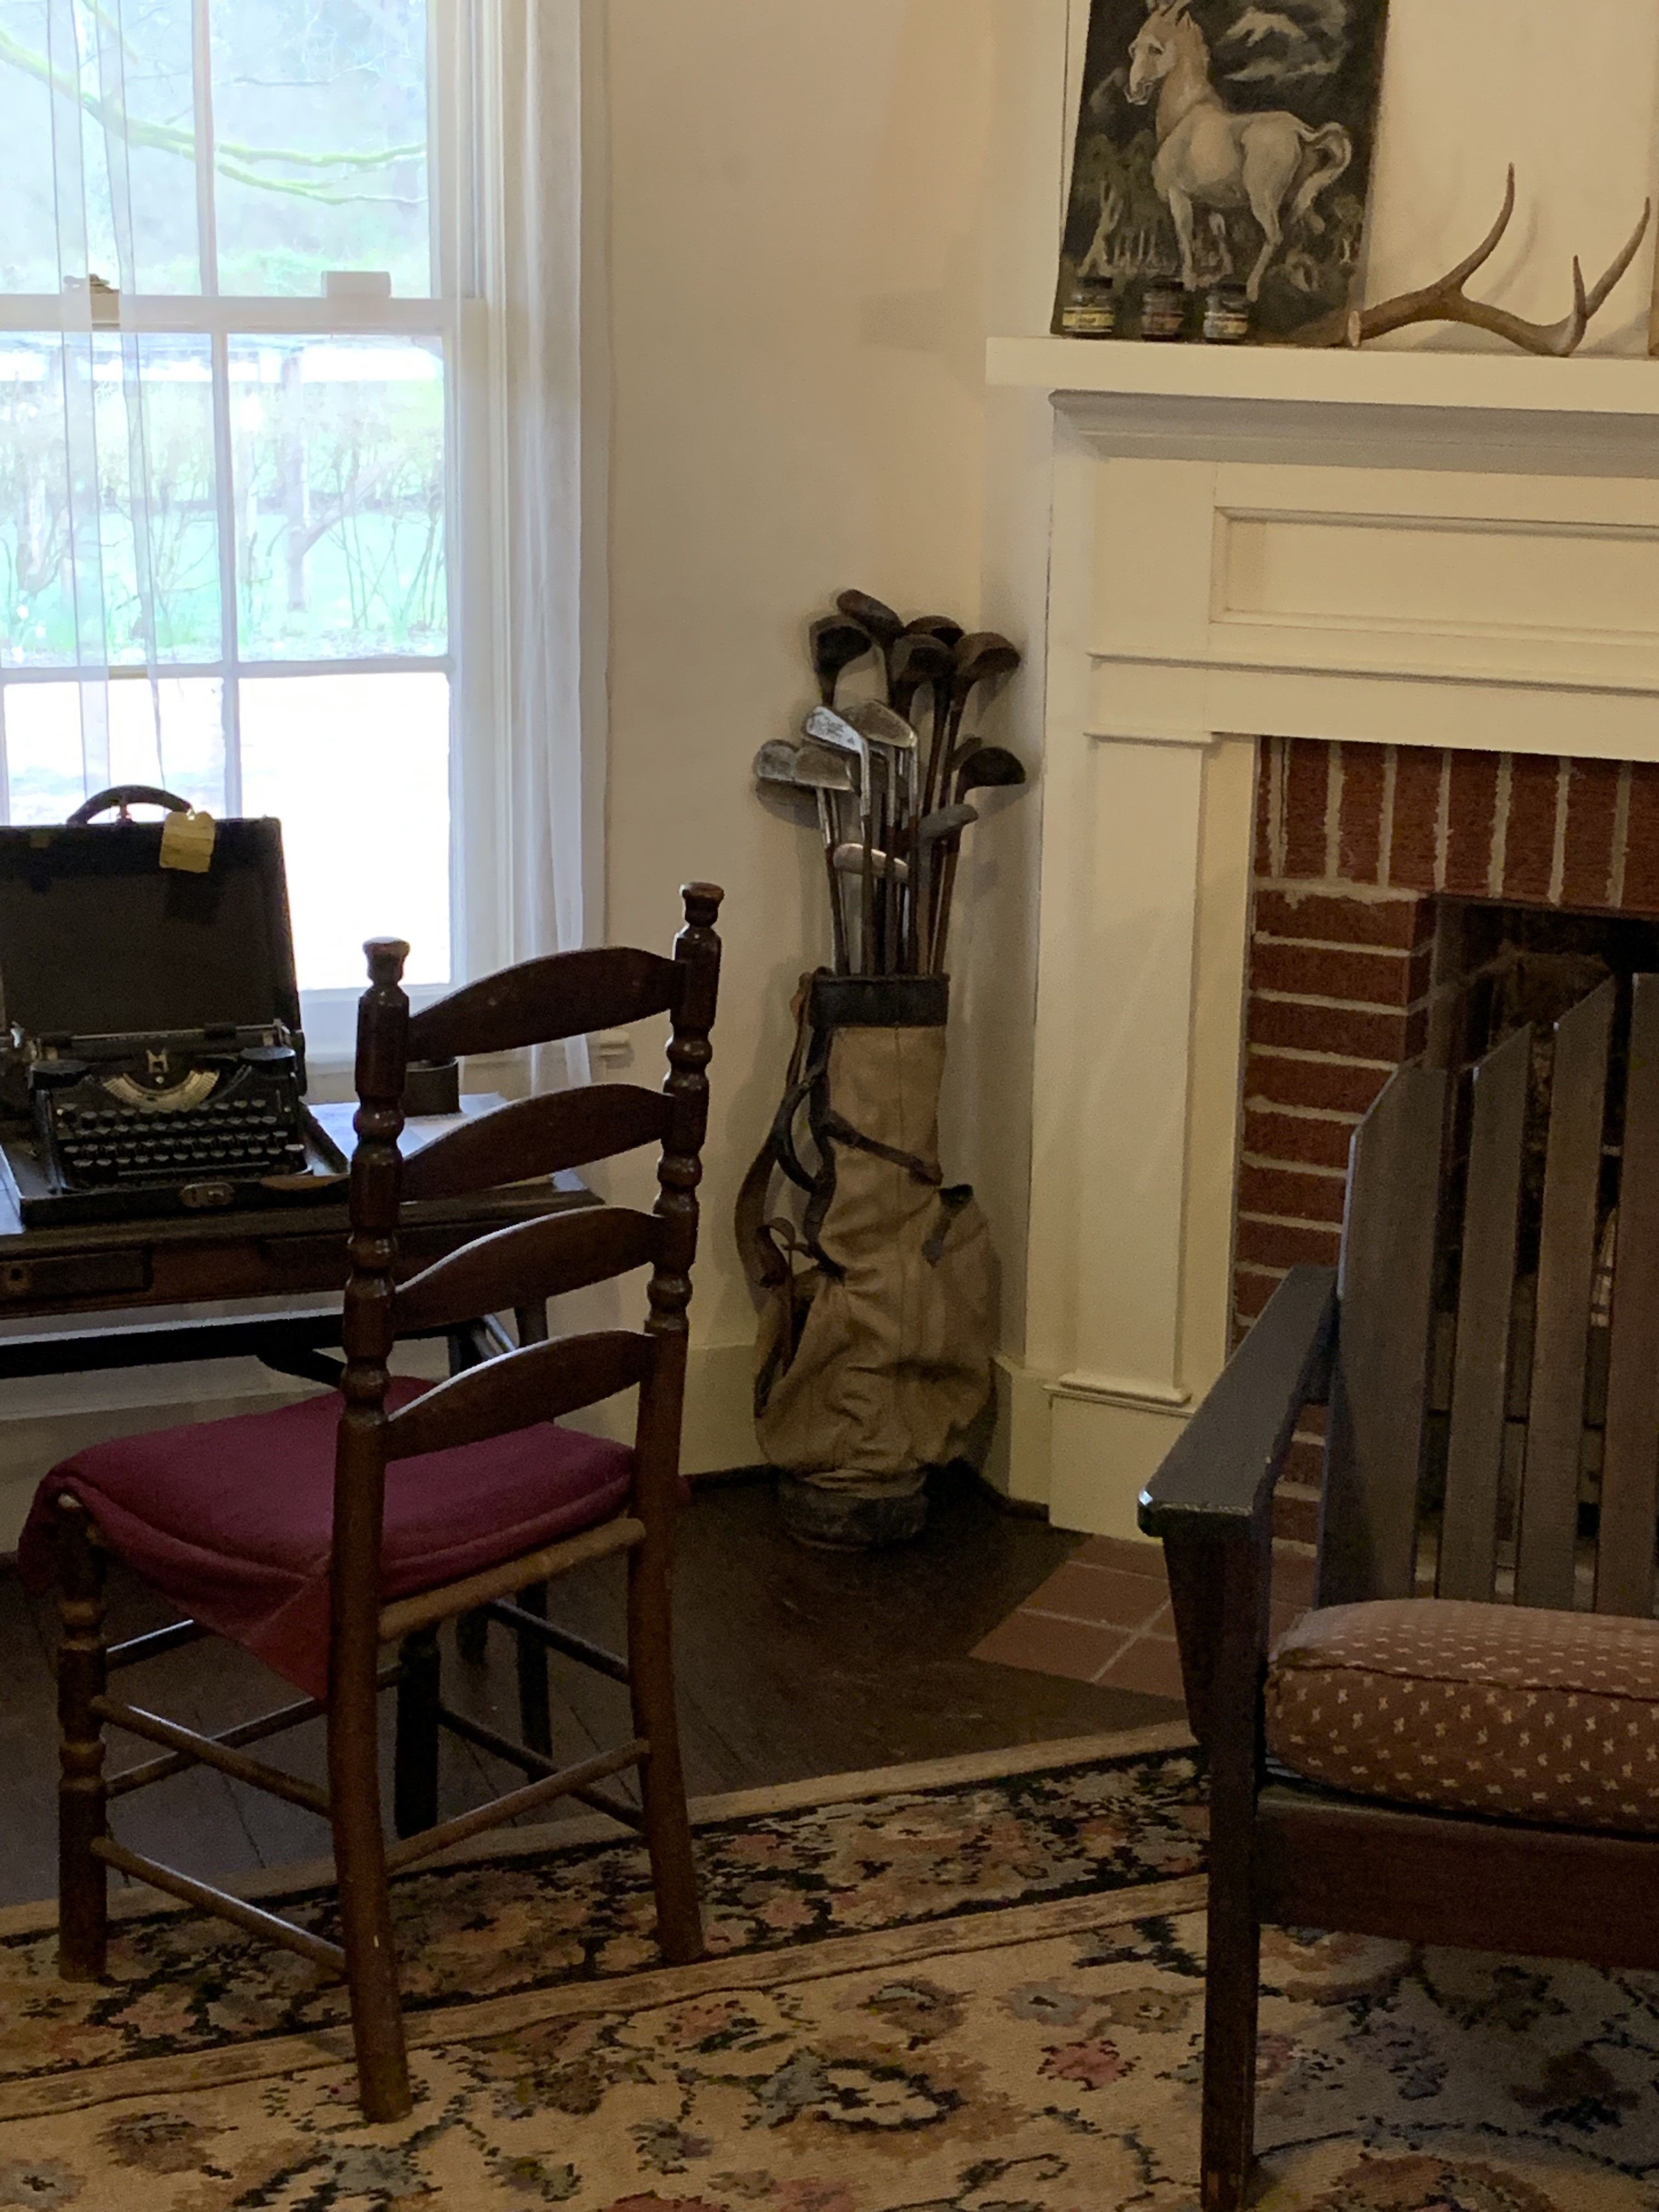 Next to his typewriter, Faulkner's golf clubs